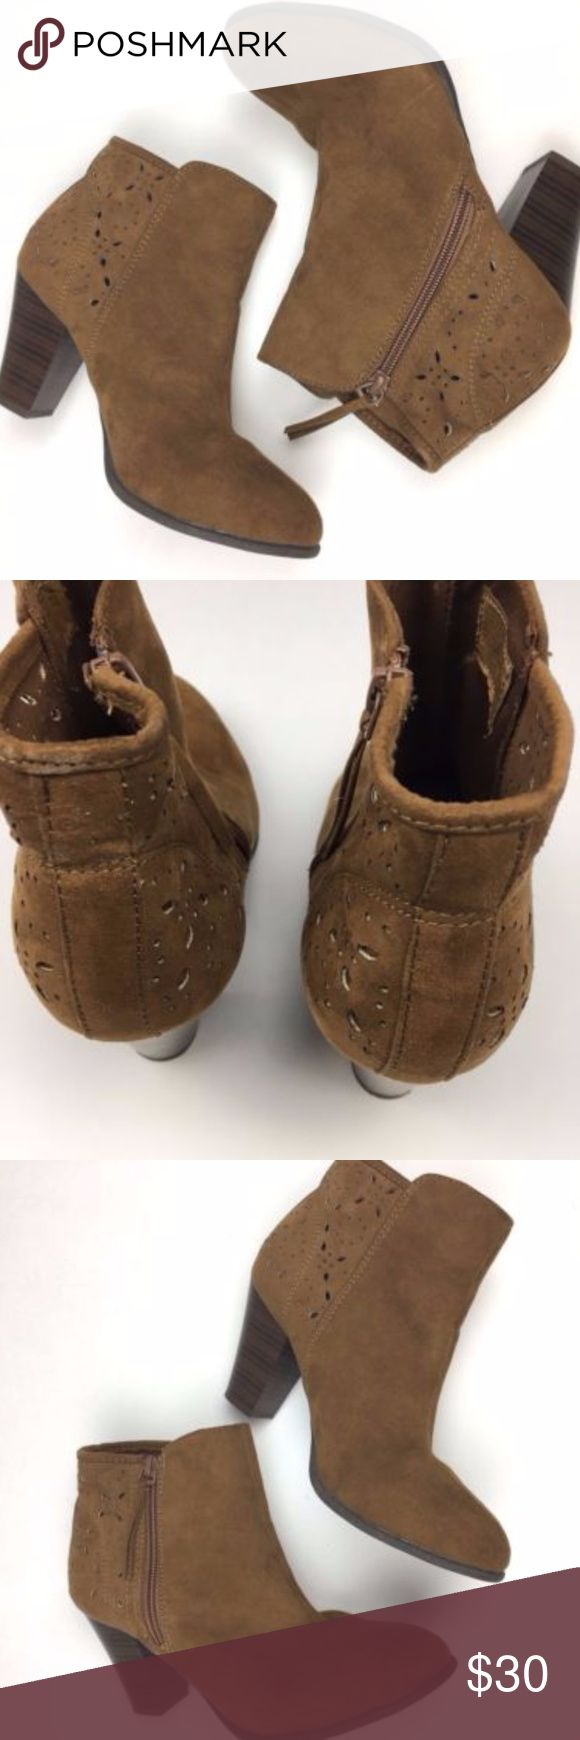 """American Eagle Outfitters laser cut ankle booties American Eagle Outfitters brown fabric ankle booties laser cut back size 7.5 very minor signs of wear  Adorable booties with a laser cut detail at the ankle 3"""" heel Brown/tan Side zip American Eagle Outfitters Shoes Ankle Boots & Booties"""